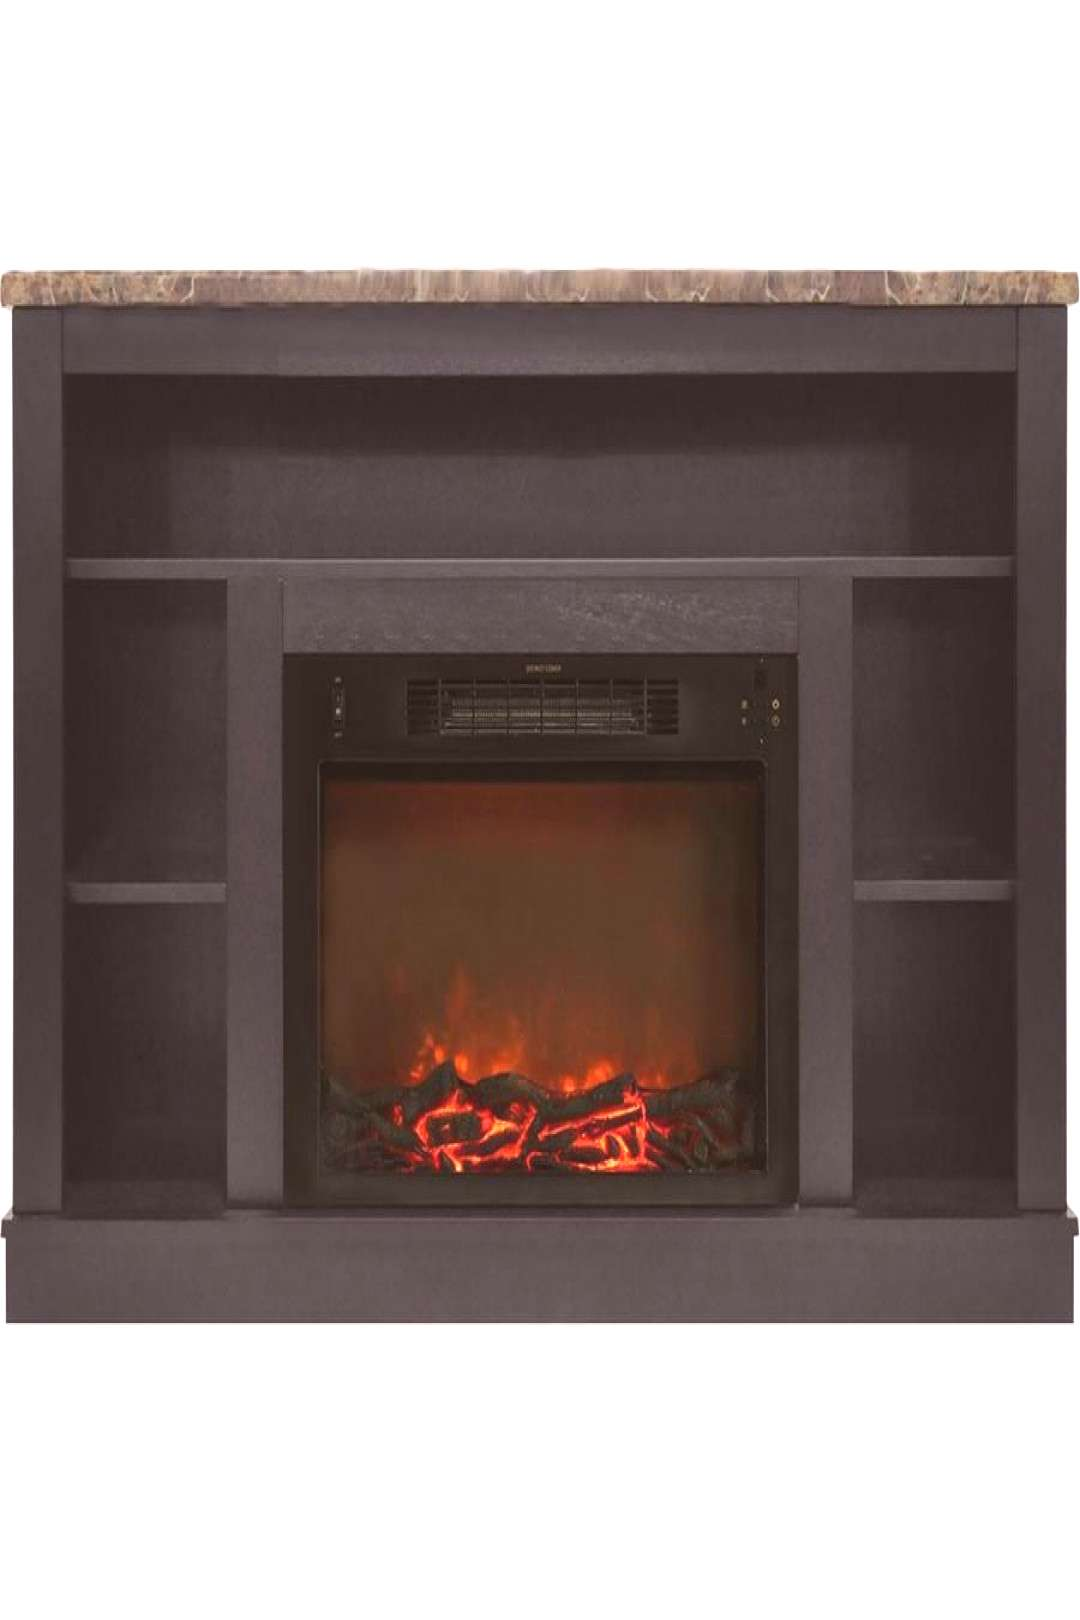 Cambridge 47 In. Electric Fireplace With A 1500W Log Insert And Black Coffee Mantel Cam5021-1... Ca